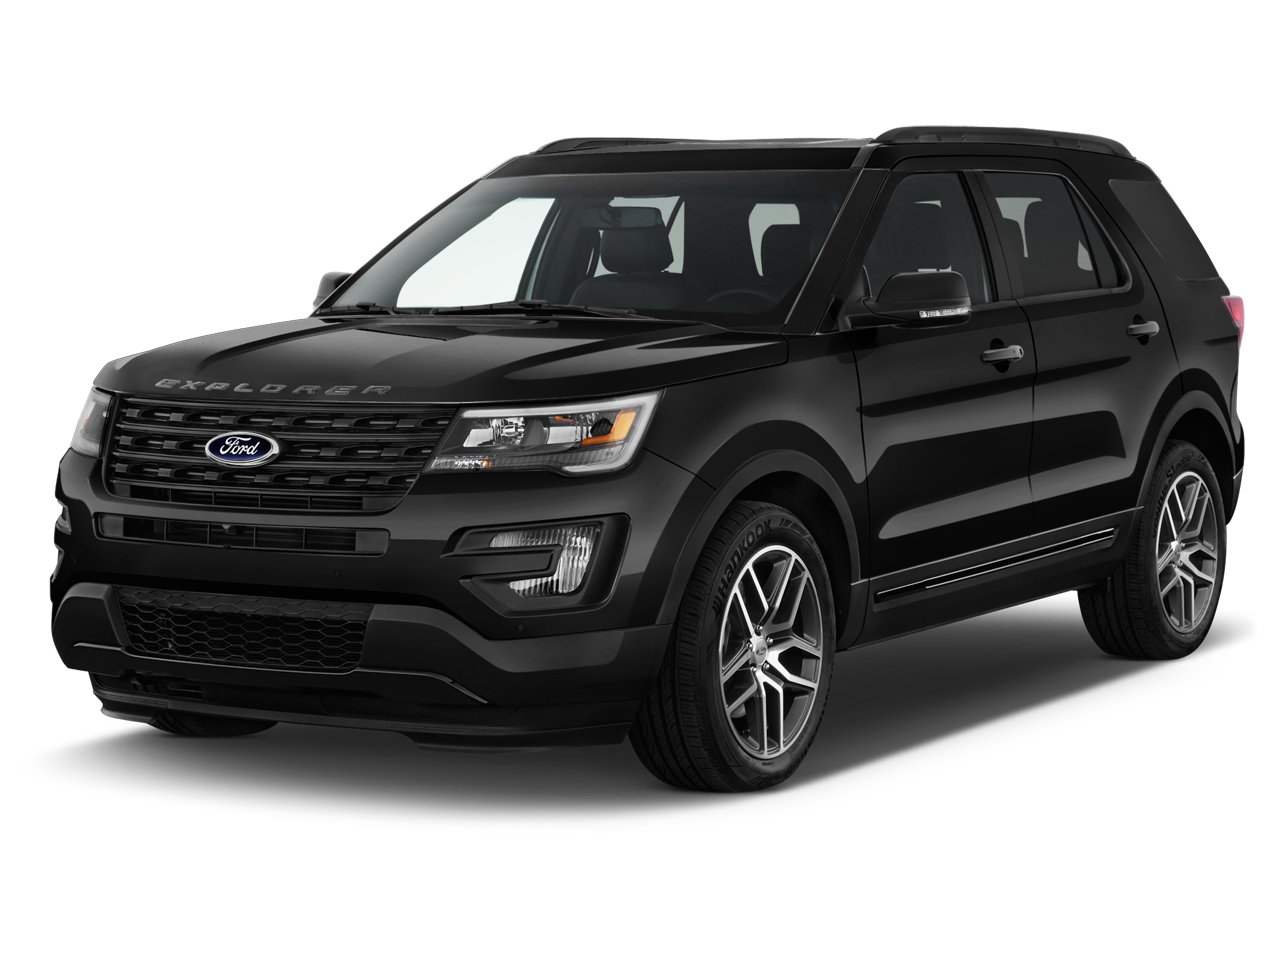 used one owner 2017 ford explorer limited near hereford tx whiteface ford. Black Bedroom Furniture Sets. Home Design Ideas